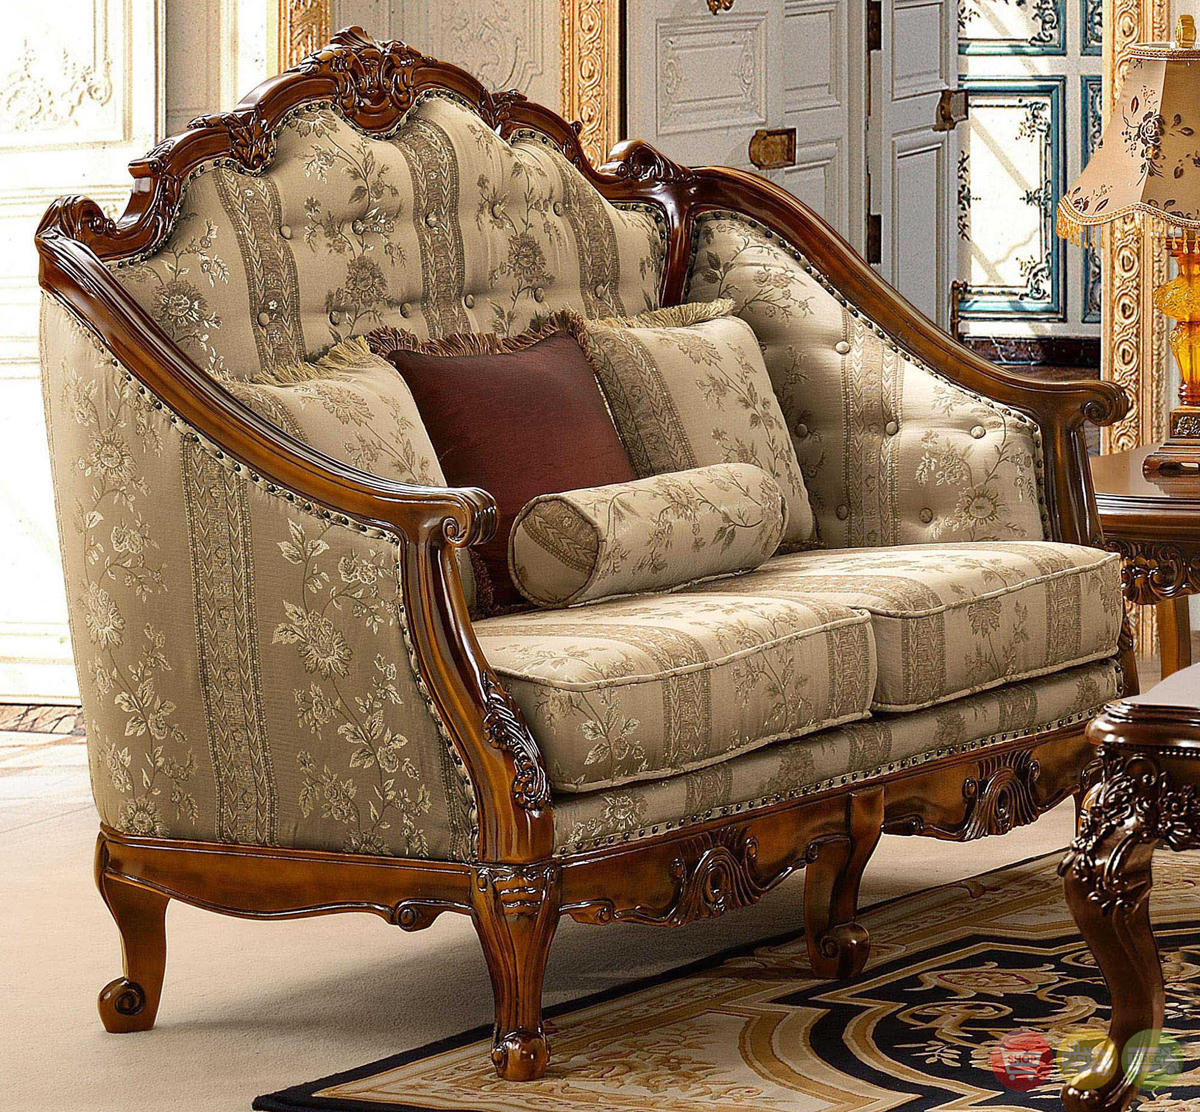 Antique Style Luxury Formal Living Room Furniture Set Hd 953 Pertaining To Old Fashioned Sofas (View 1 of 15)